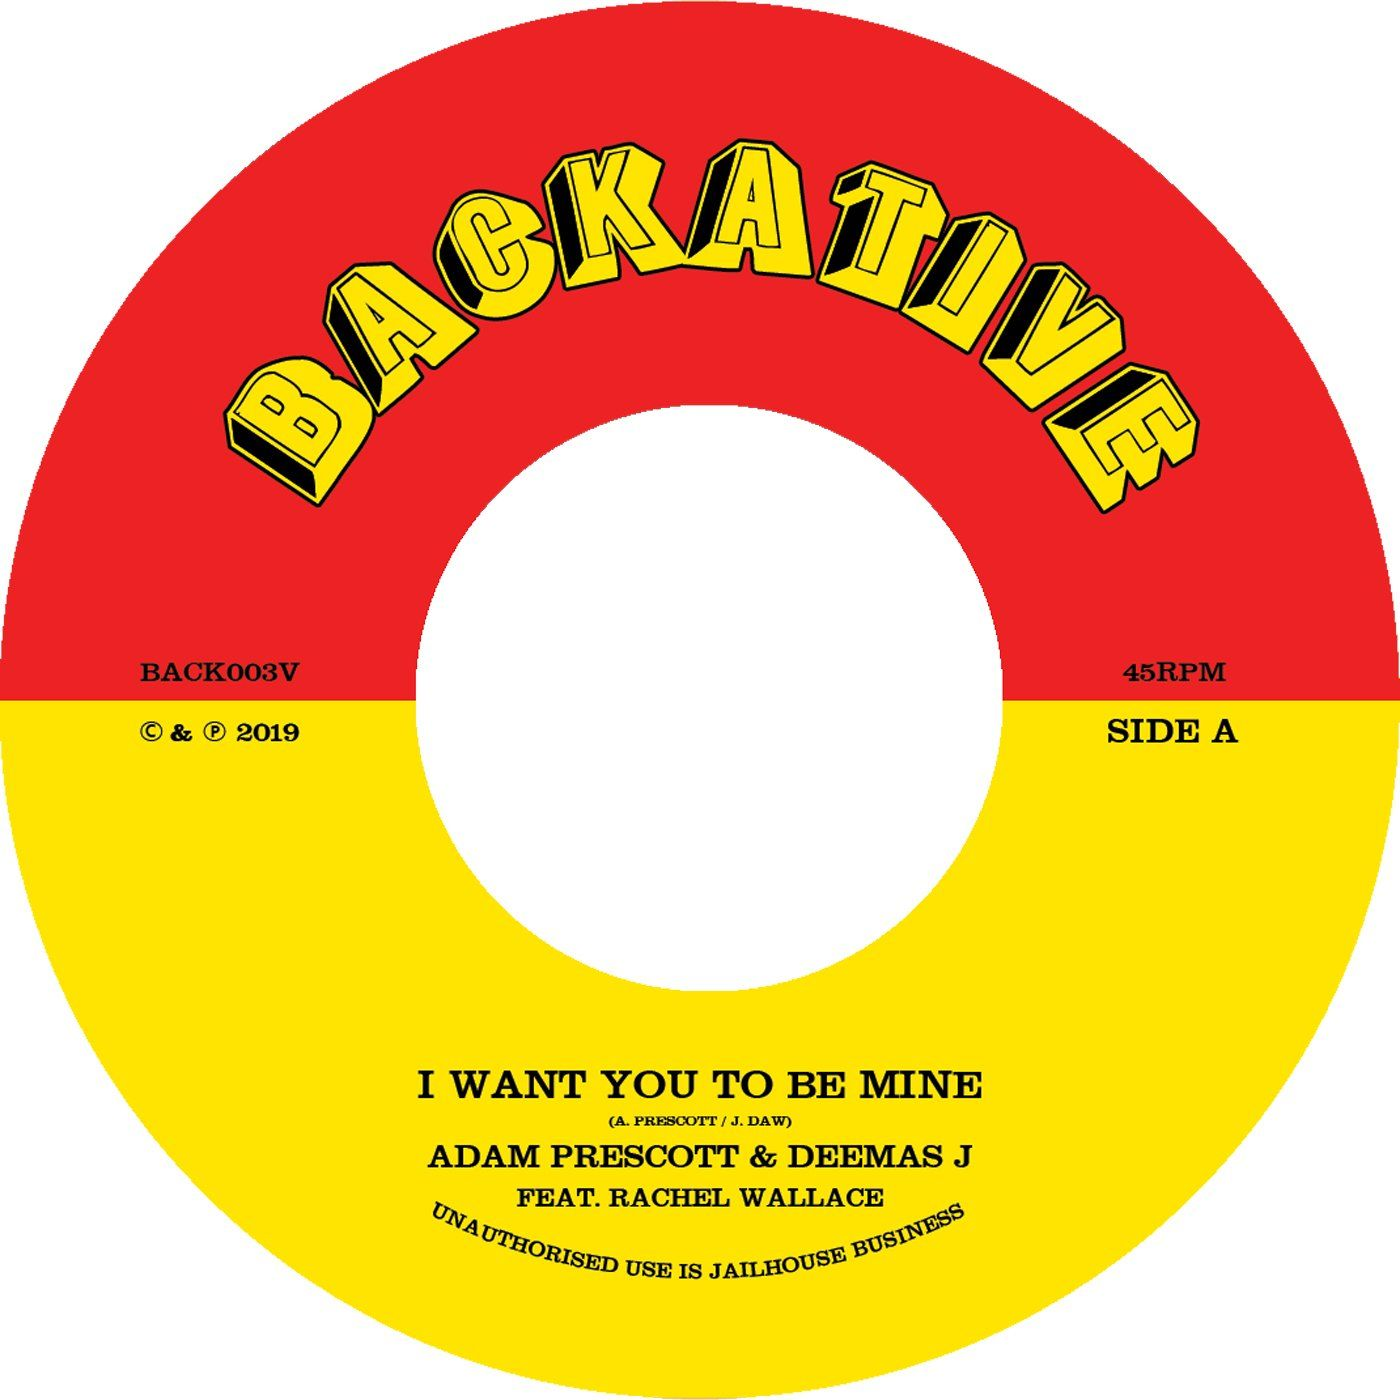 I WANT YOU TO BE MINE / QUESTIONS